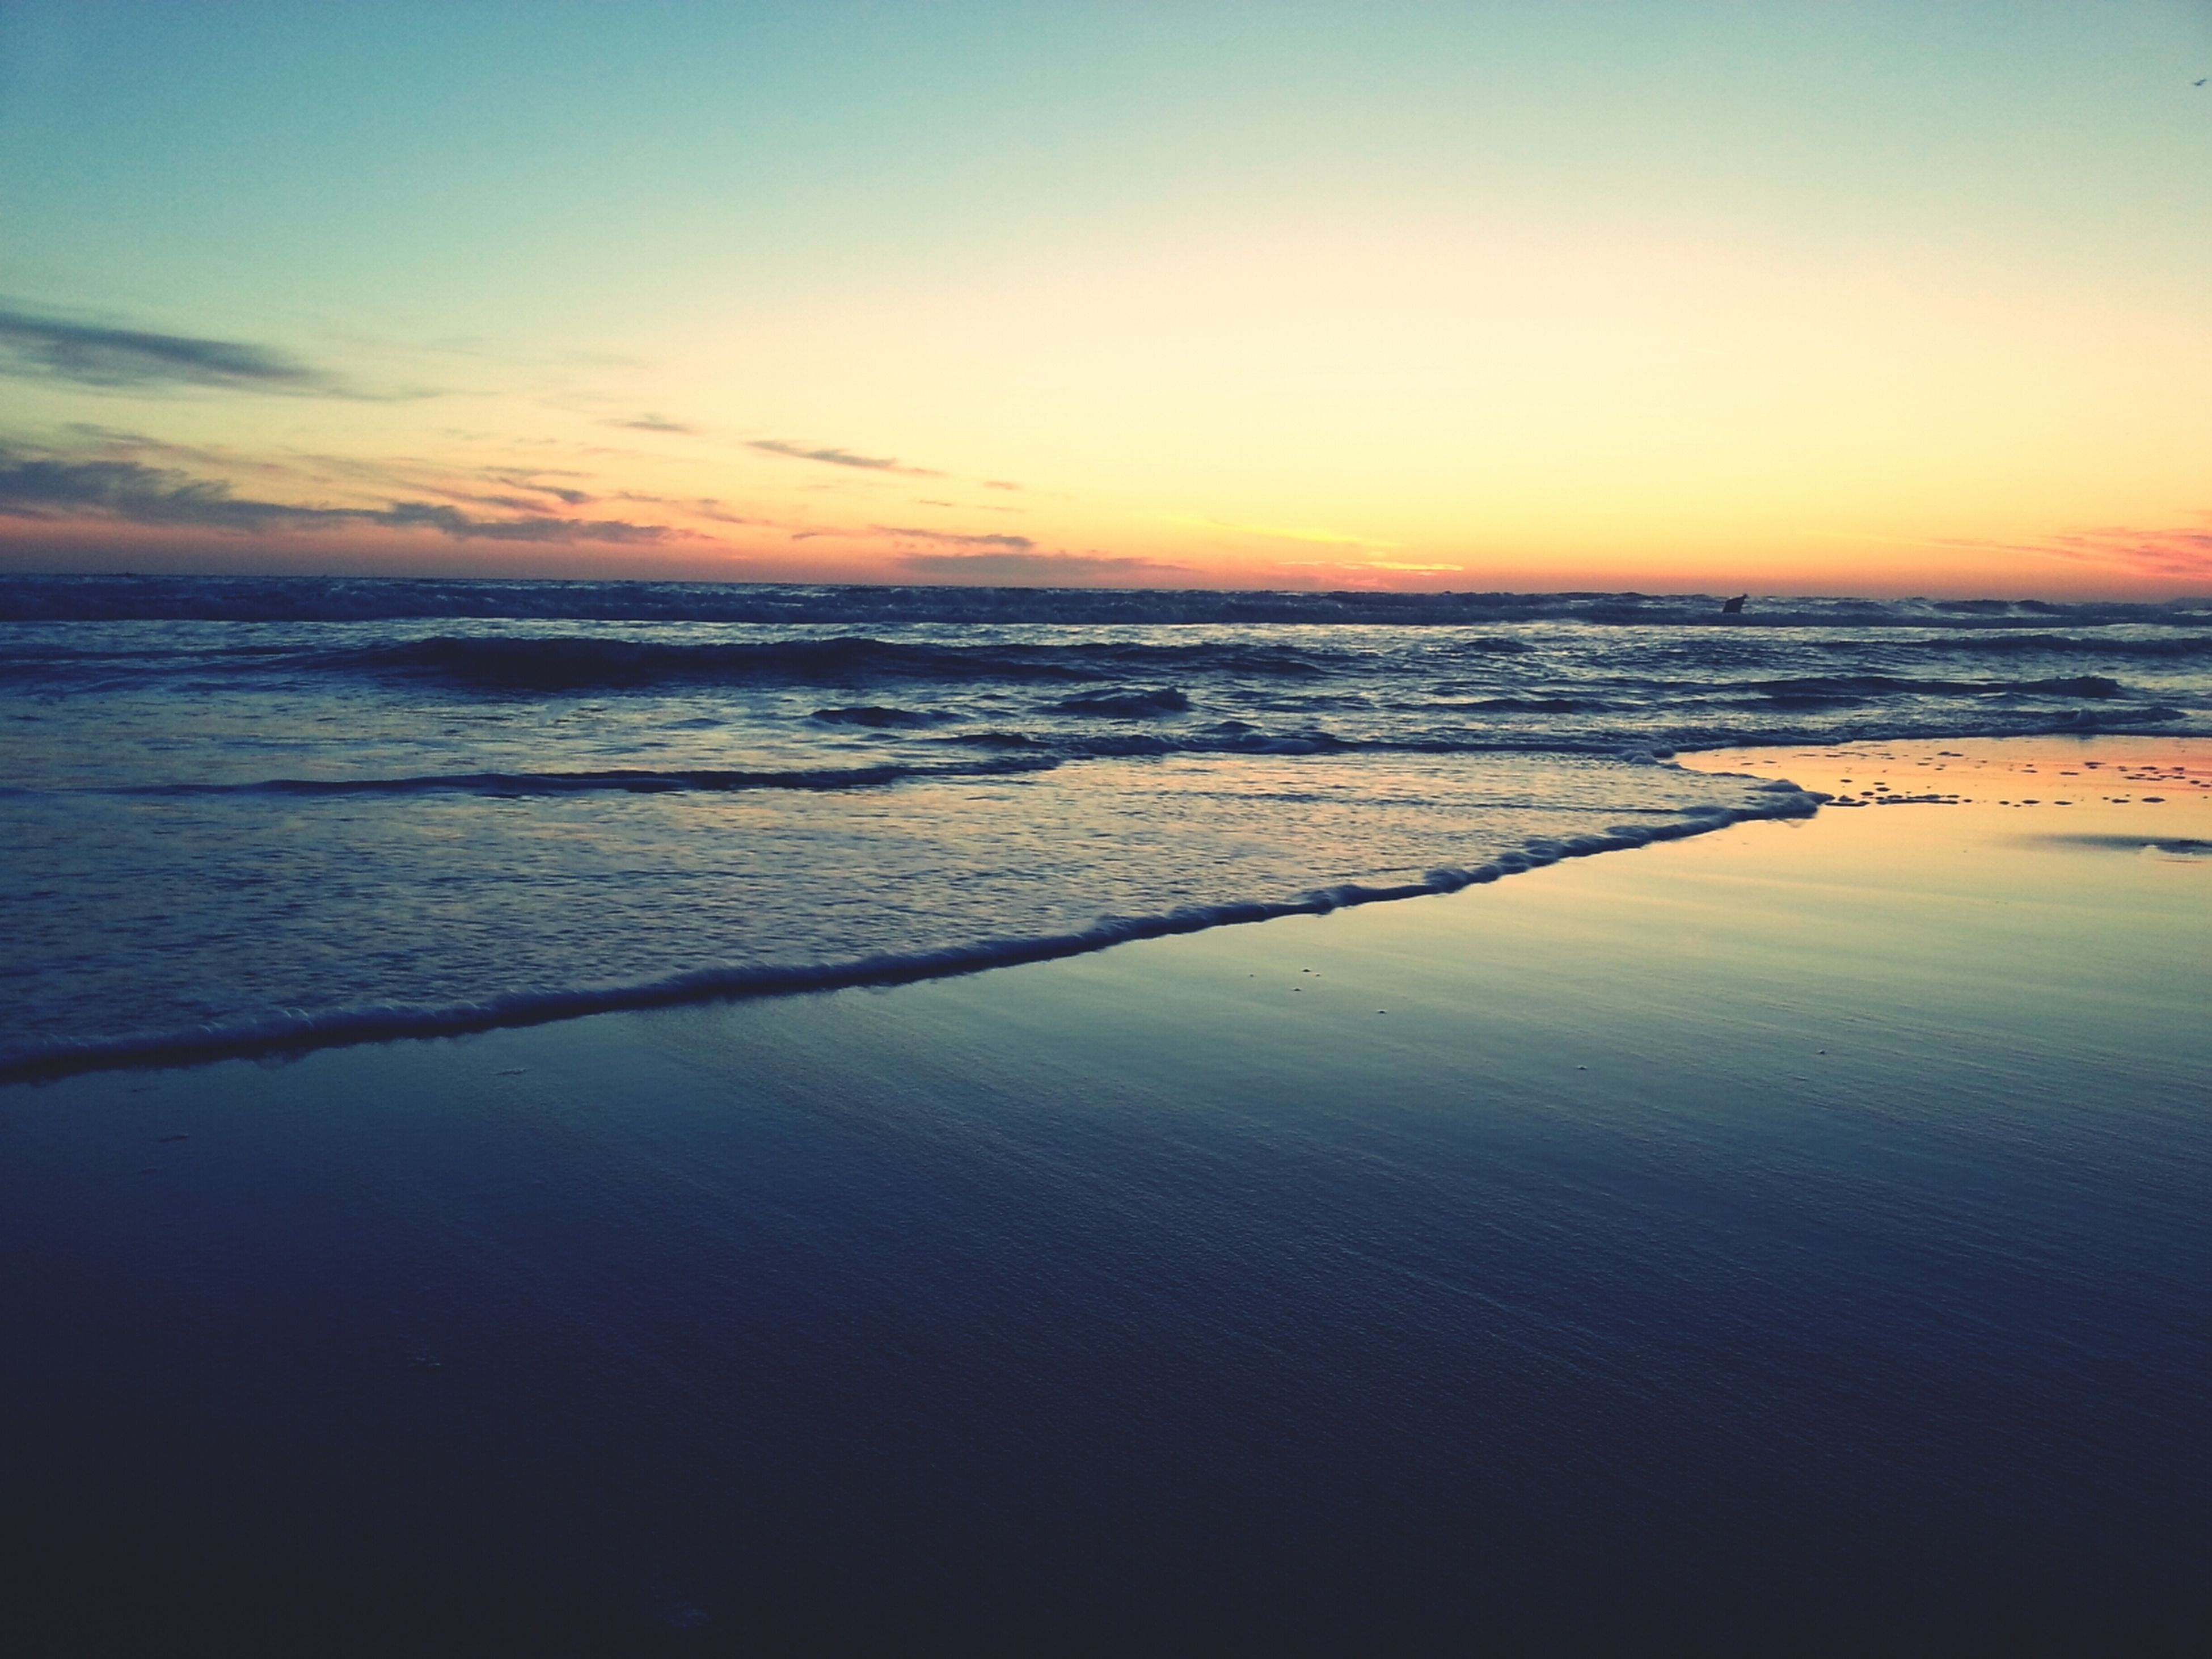 sea, water, sunset, horizon over water, scenics, tranquil scene, beauty in nature, tranquility, beach, sky, nature, idyllic, shore, orange color, reflection, waterfront, wave, dusk, outdoors, calm